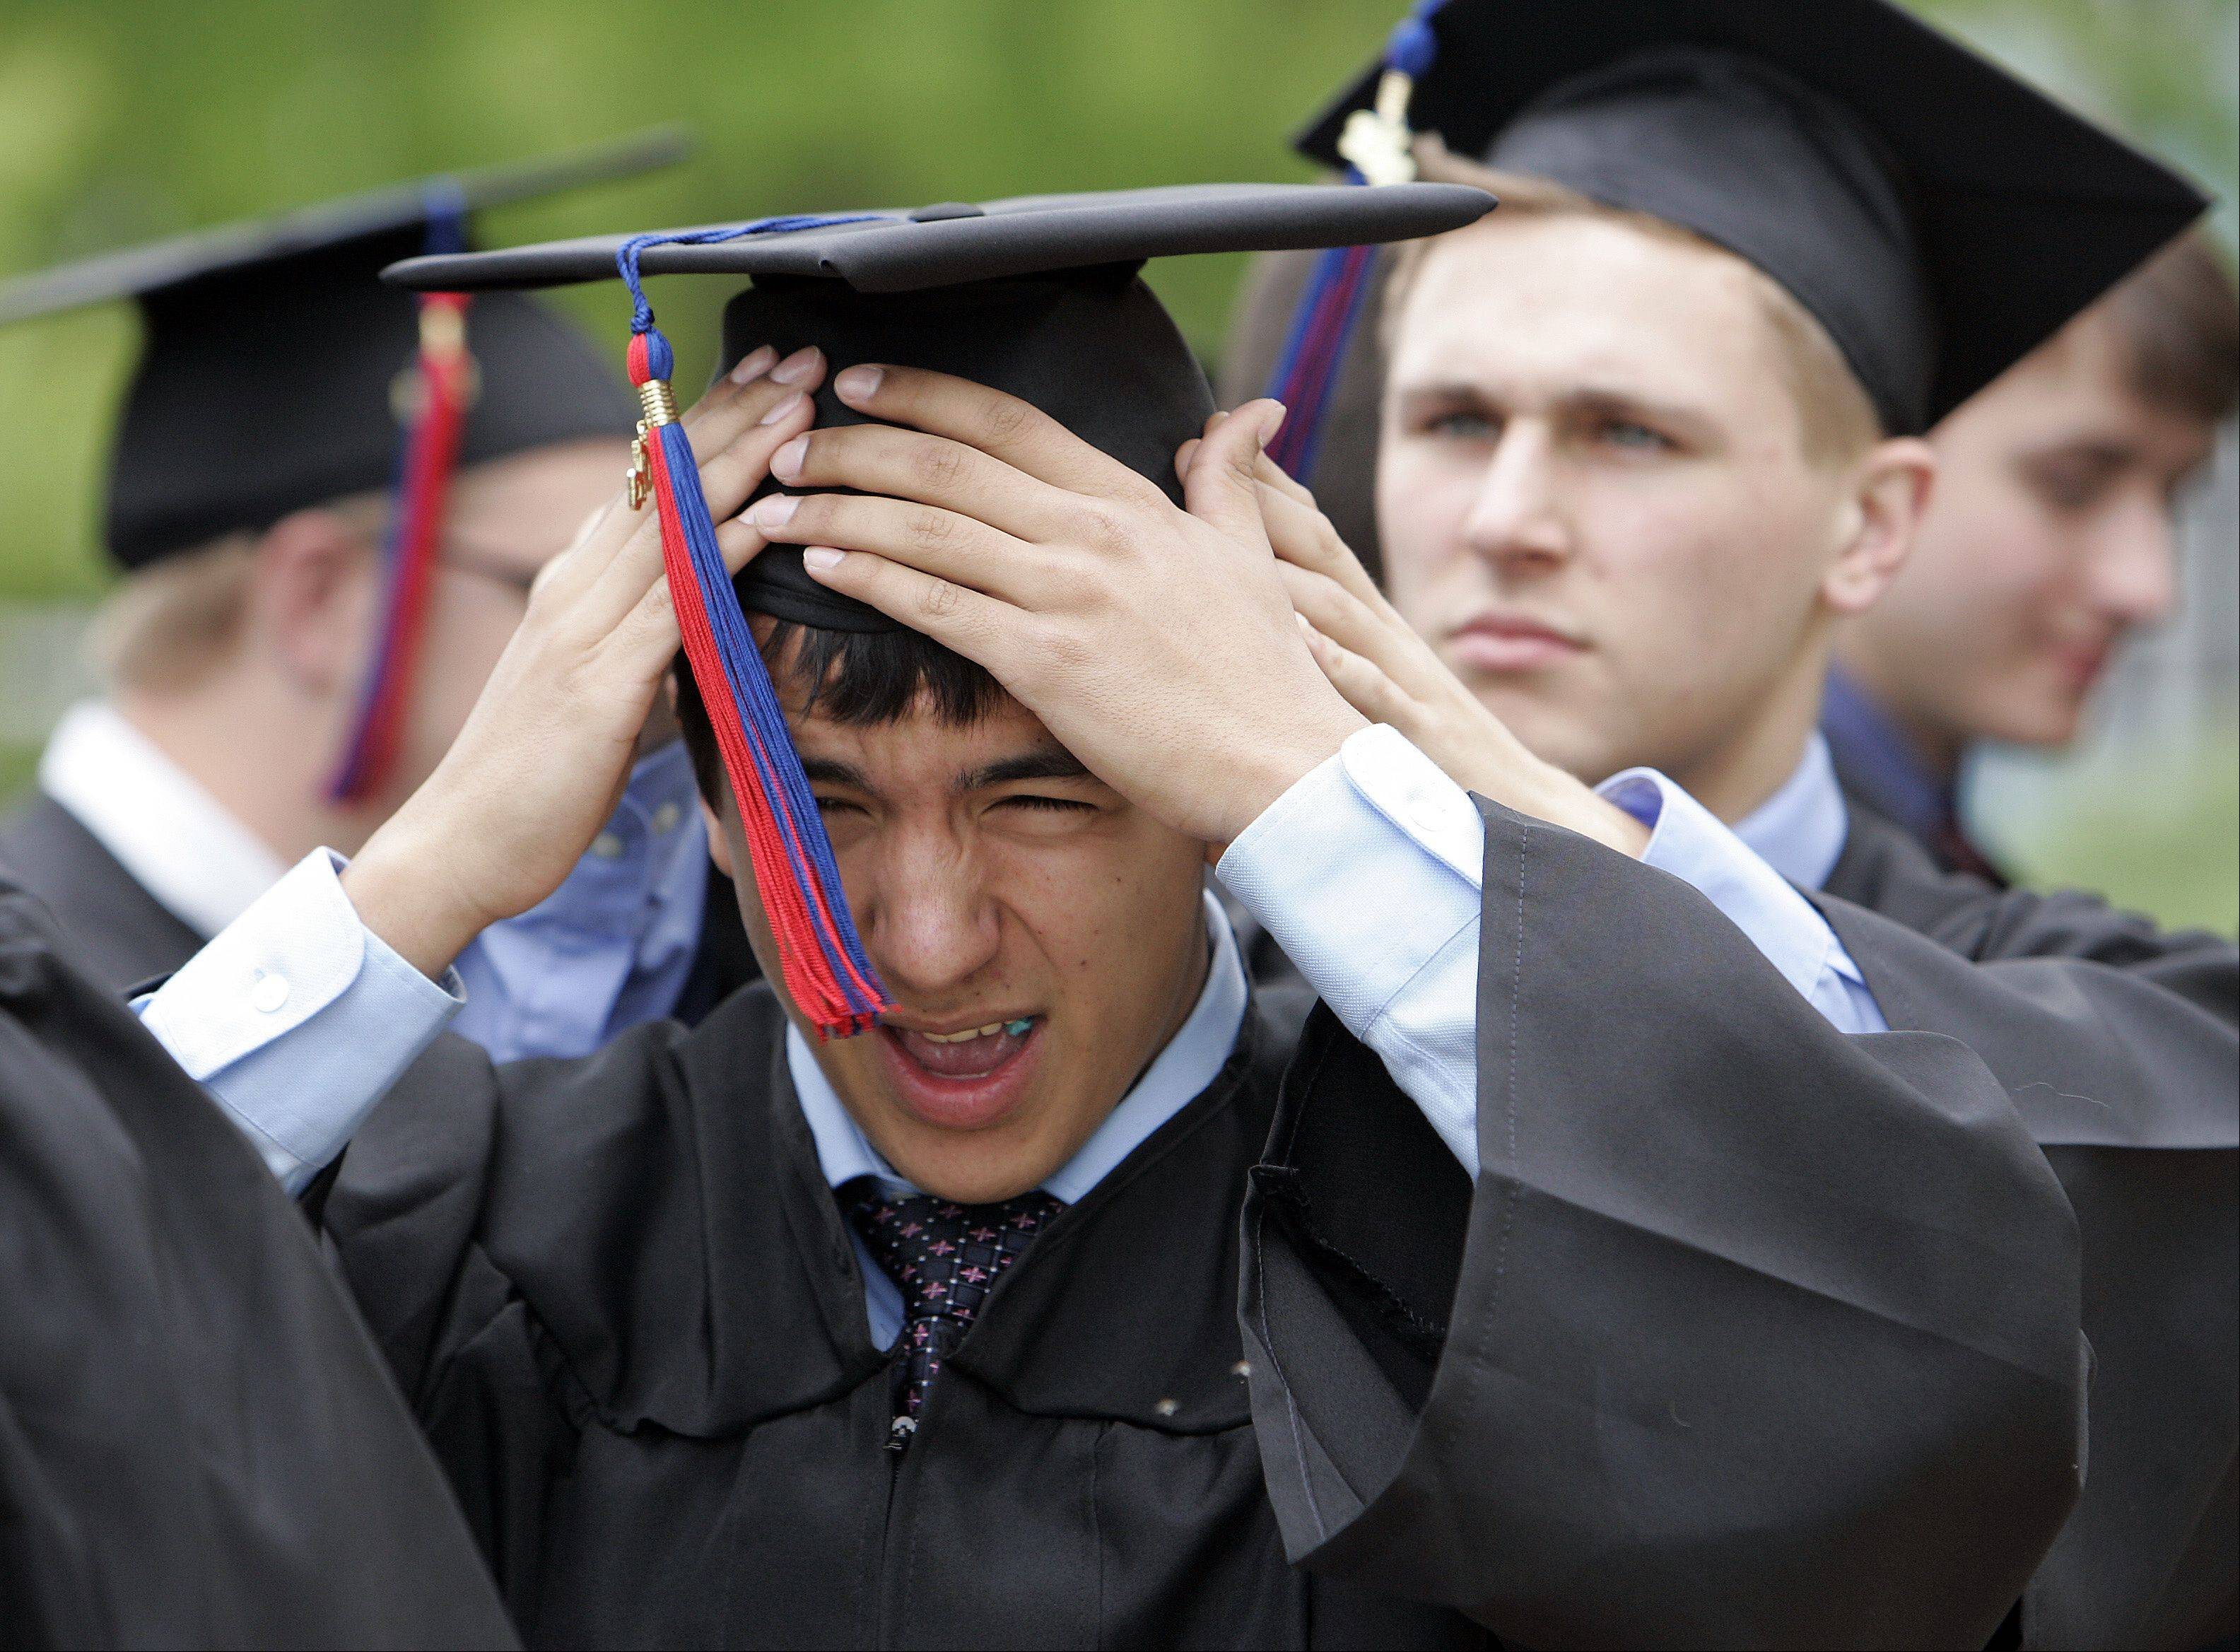 Alex Lopez of Lisle gets a helping hand with his mortarboard before Marmion Academy's 79th commencement exercises Sunday, May 26, 2013 in Aurora.